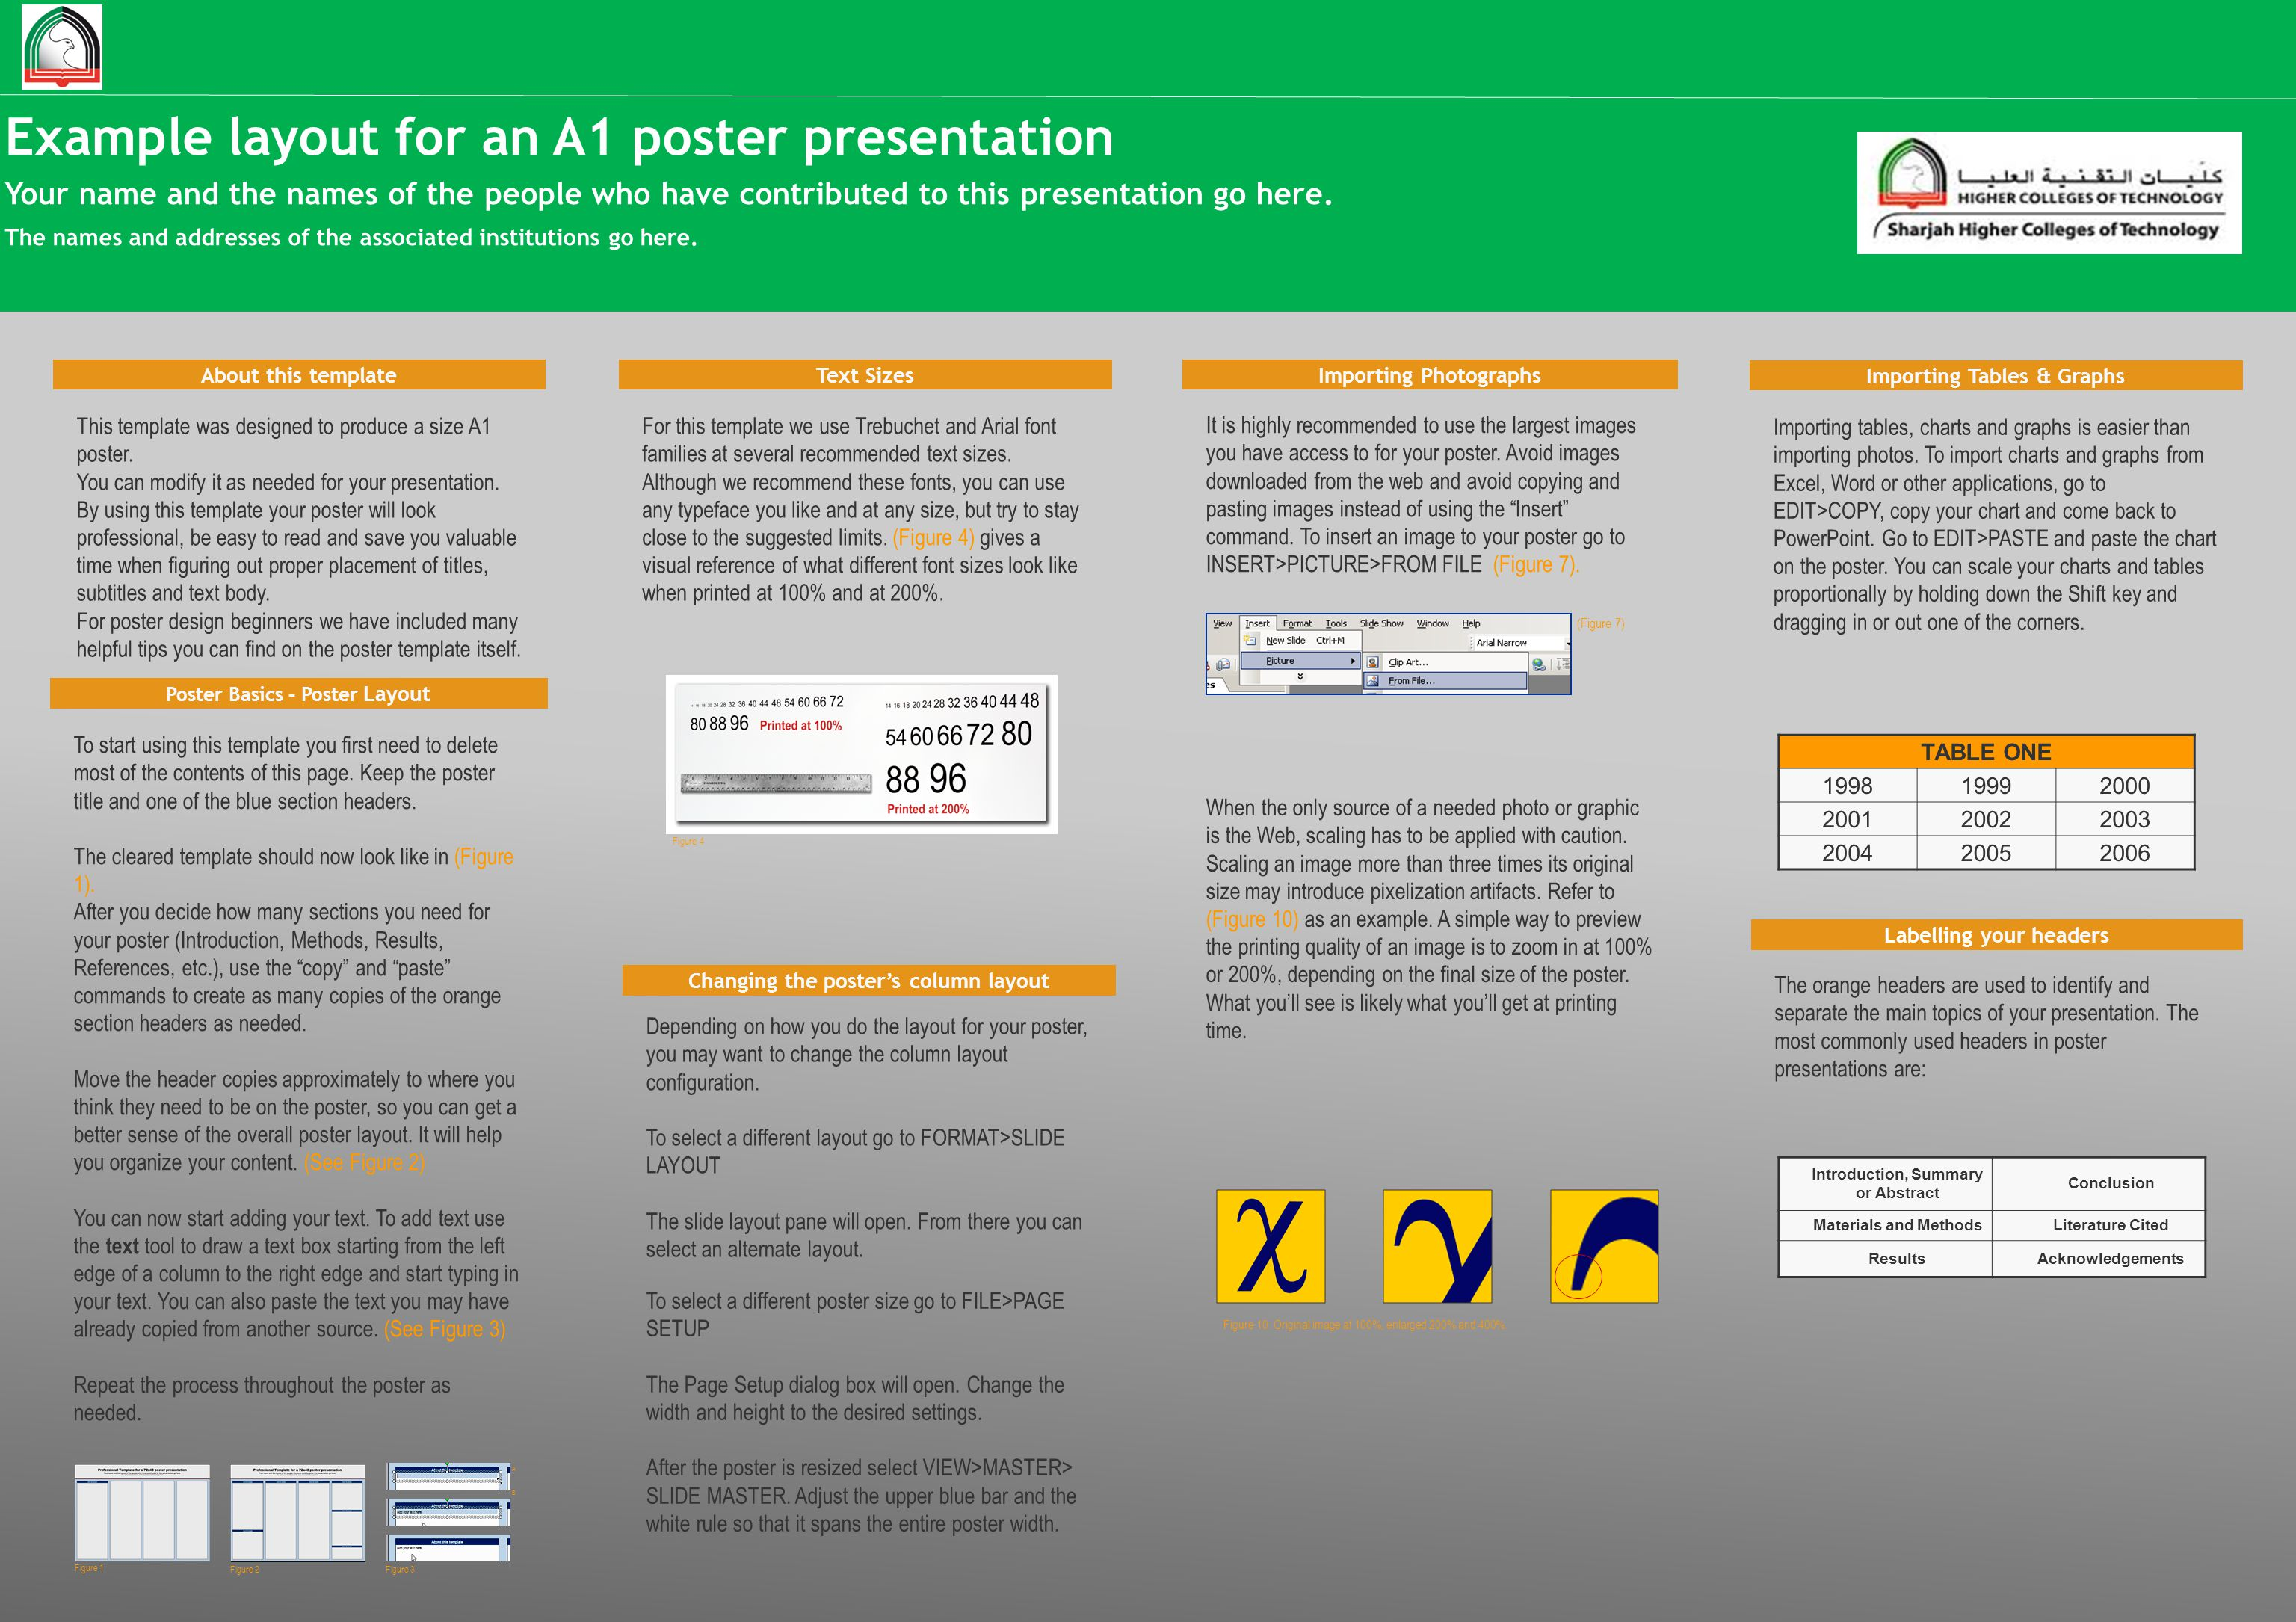 example layout for an a1 poster presentation - ppt download, Powerpoint templates